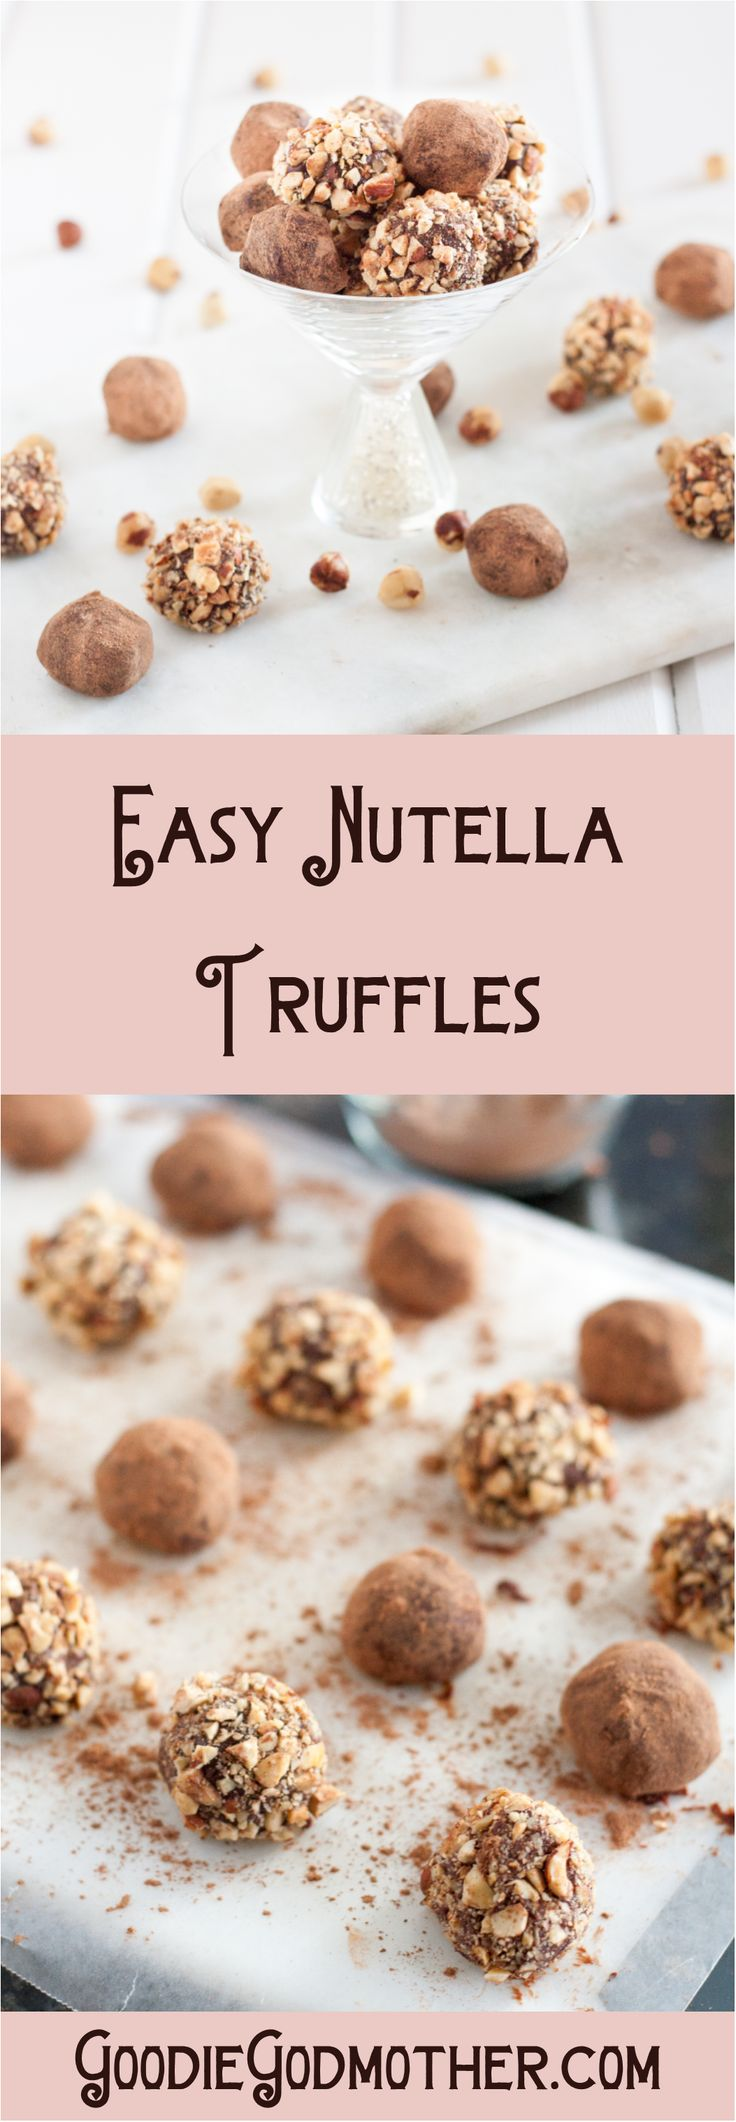 Nutella truffles are an easy edible gift idea! Roll them in toasted hazelnuts, or keep it classic with a cocoa powder coating.